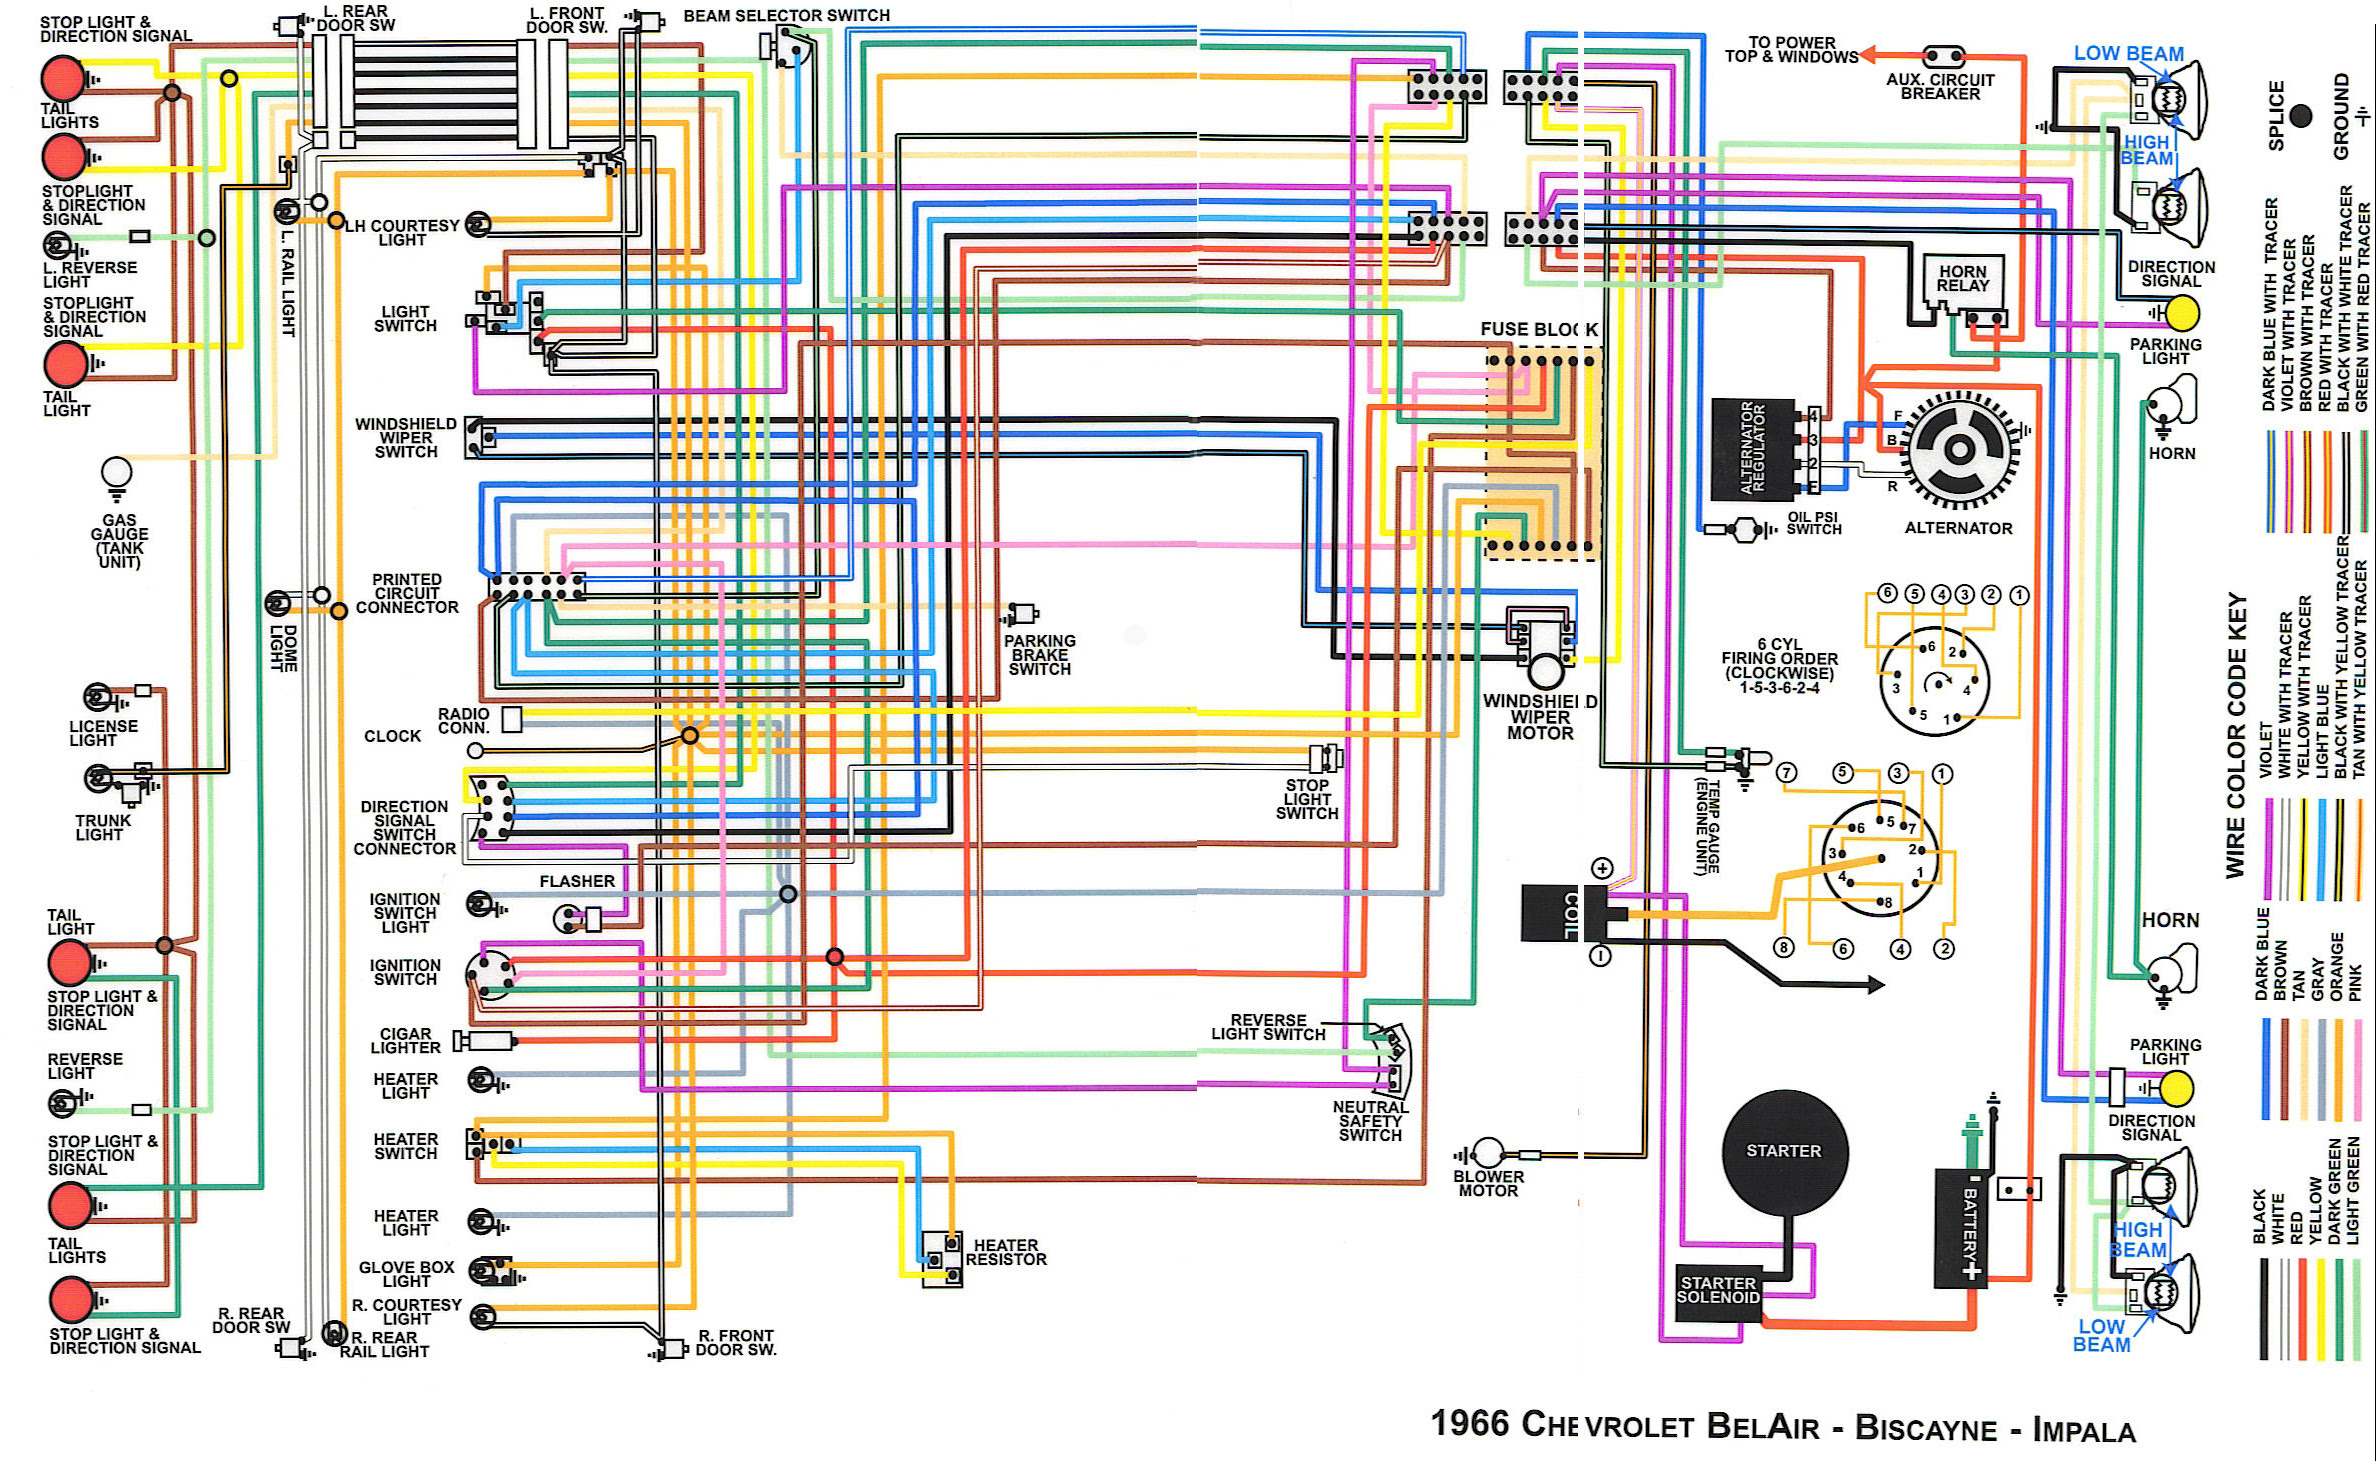 1966 C10 Diagram -2002 Bmw 330i Fuse Box Diagram | Bege Place Wiring DiagramBege Place Wiring Diagram